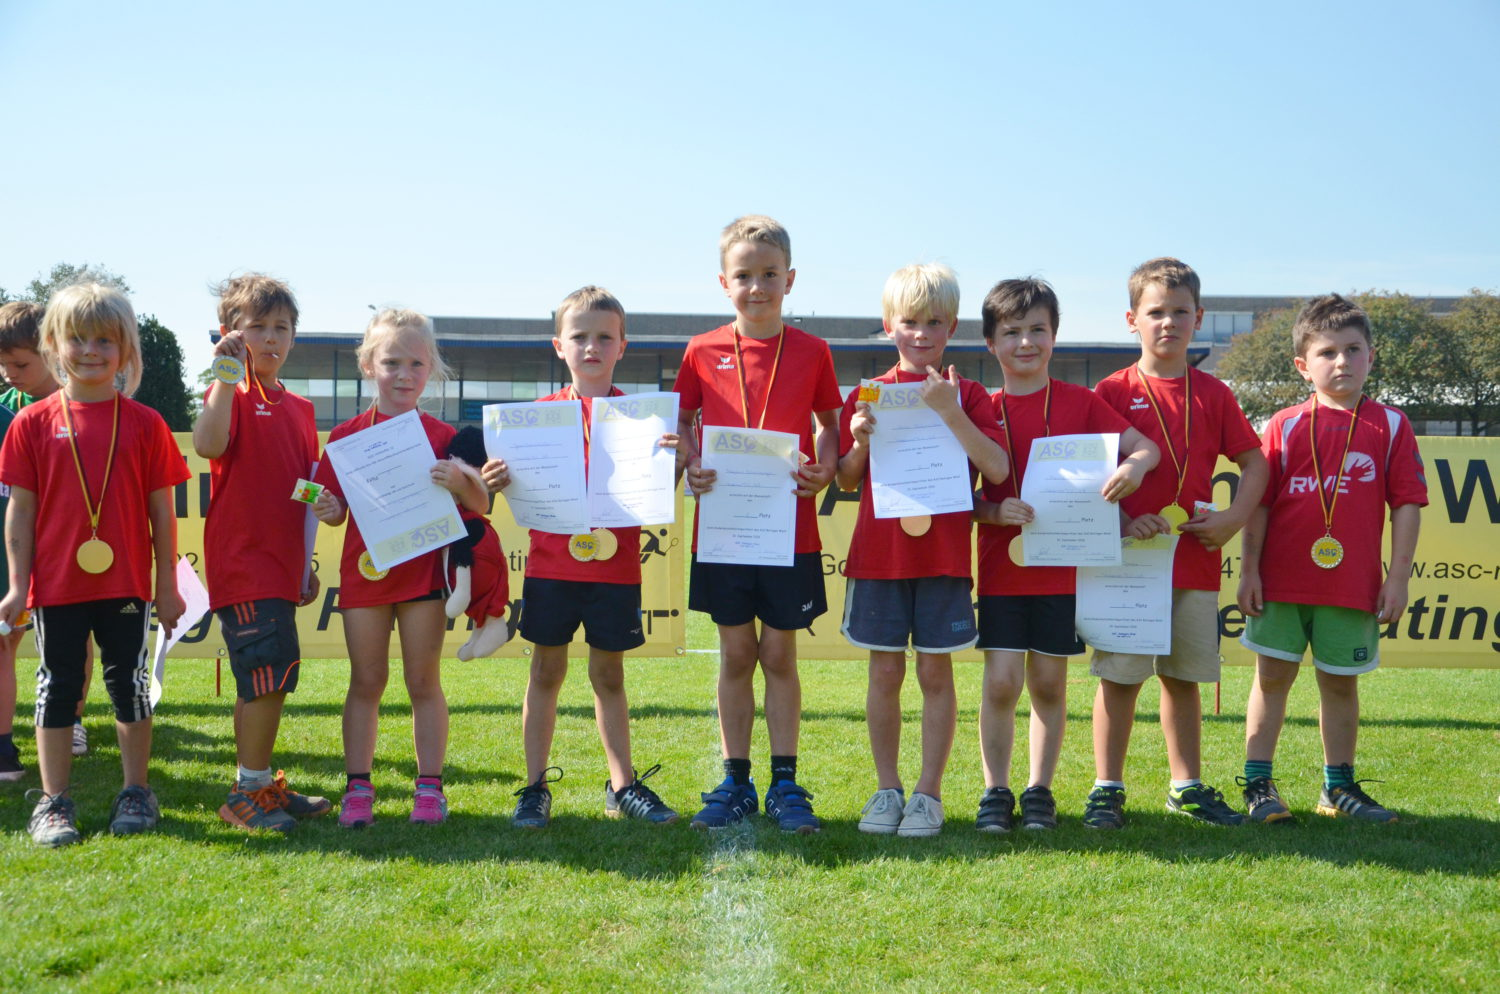 Kinderleichtathletik-Sportfest in Ratingen